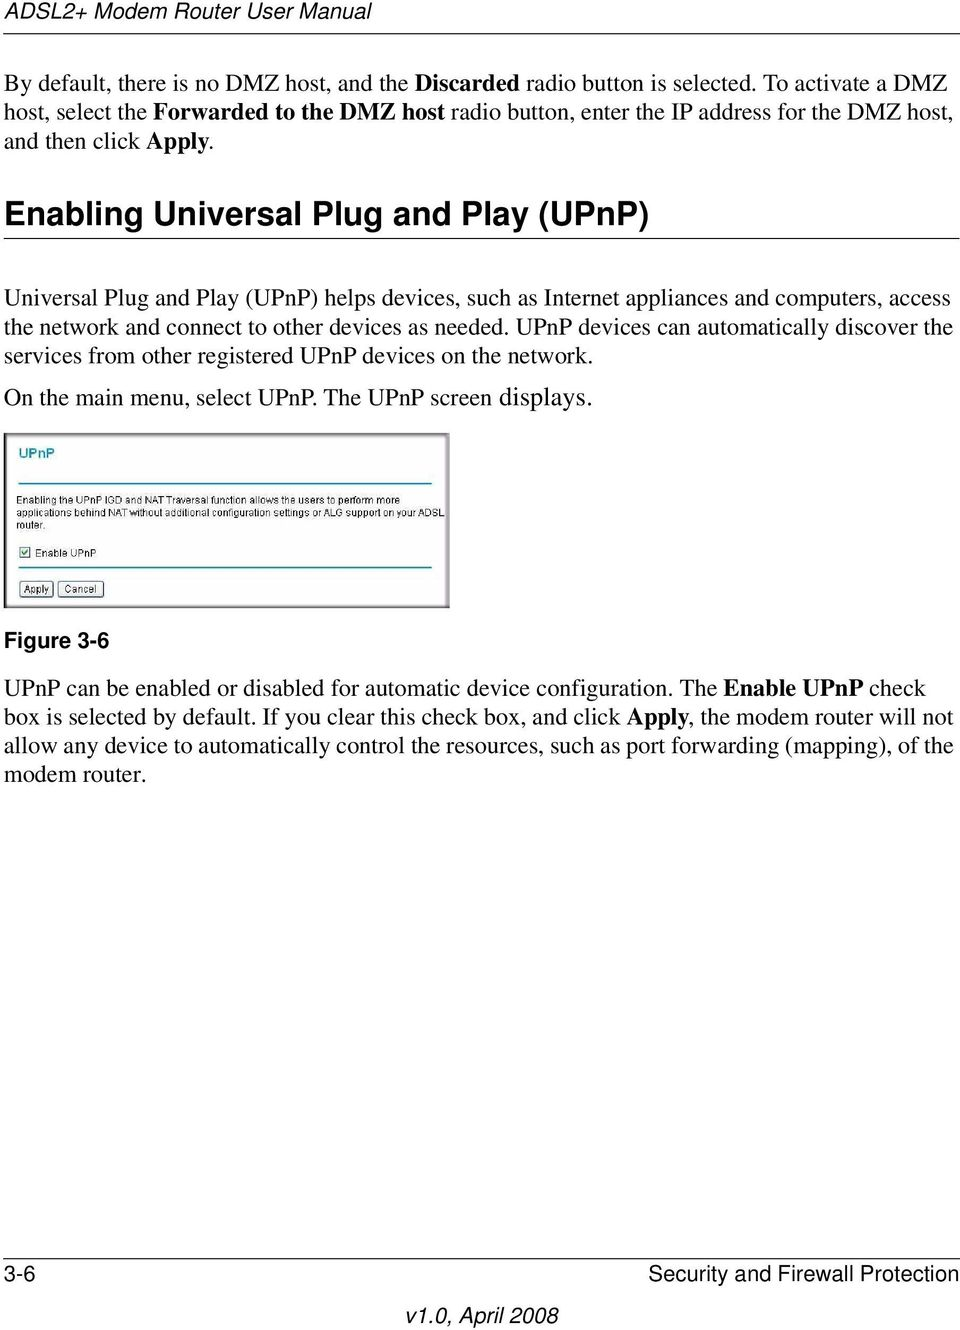 Enabling Universal Plug and Play (UPnP) Universal Plug and Play (UPnP) helps devices, such as Internet appliances and computers, access the network and connect to other devices as needed.